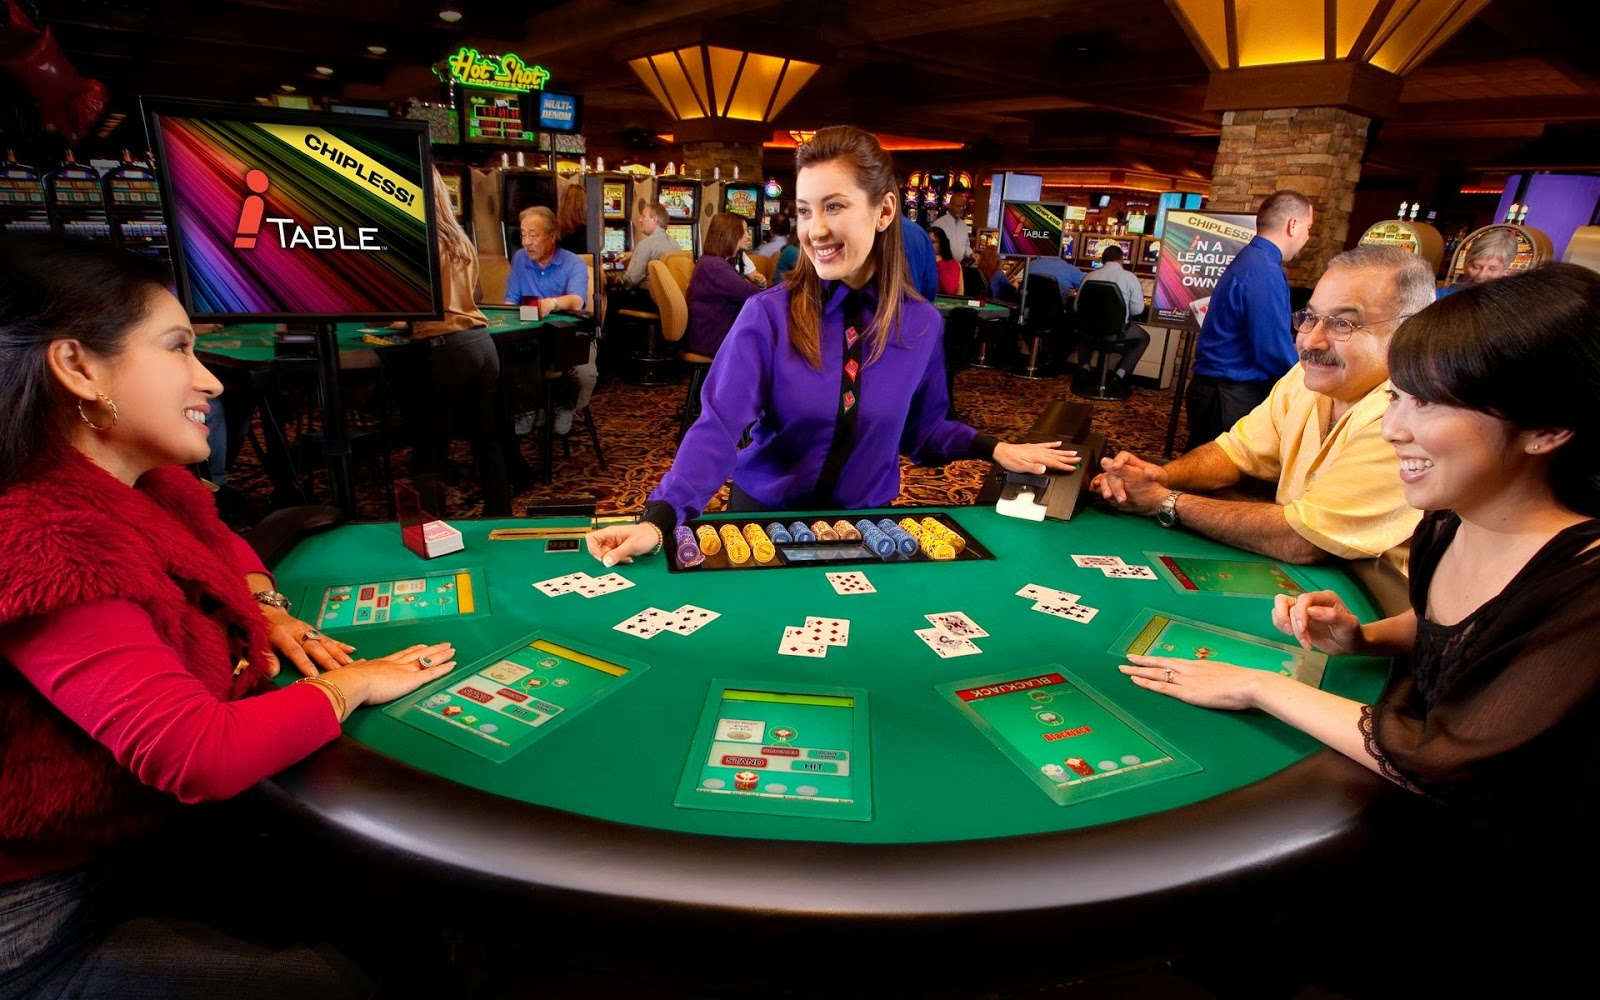 free casino games, online baccarat games, online casino blackjack